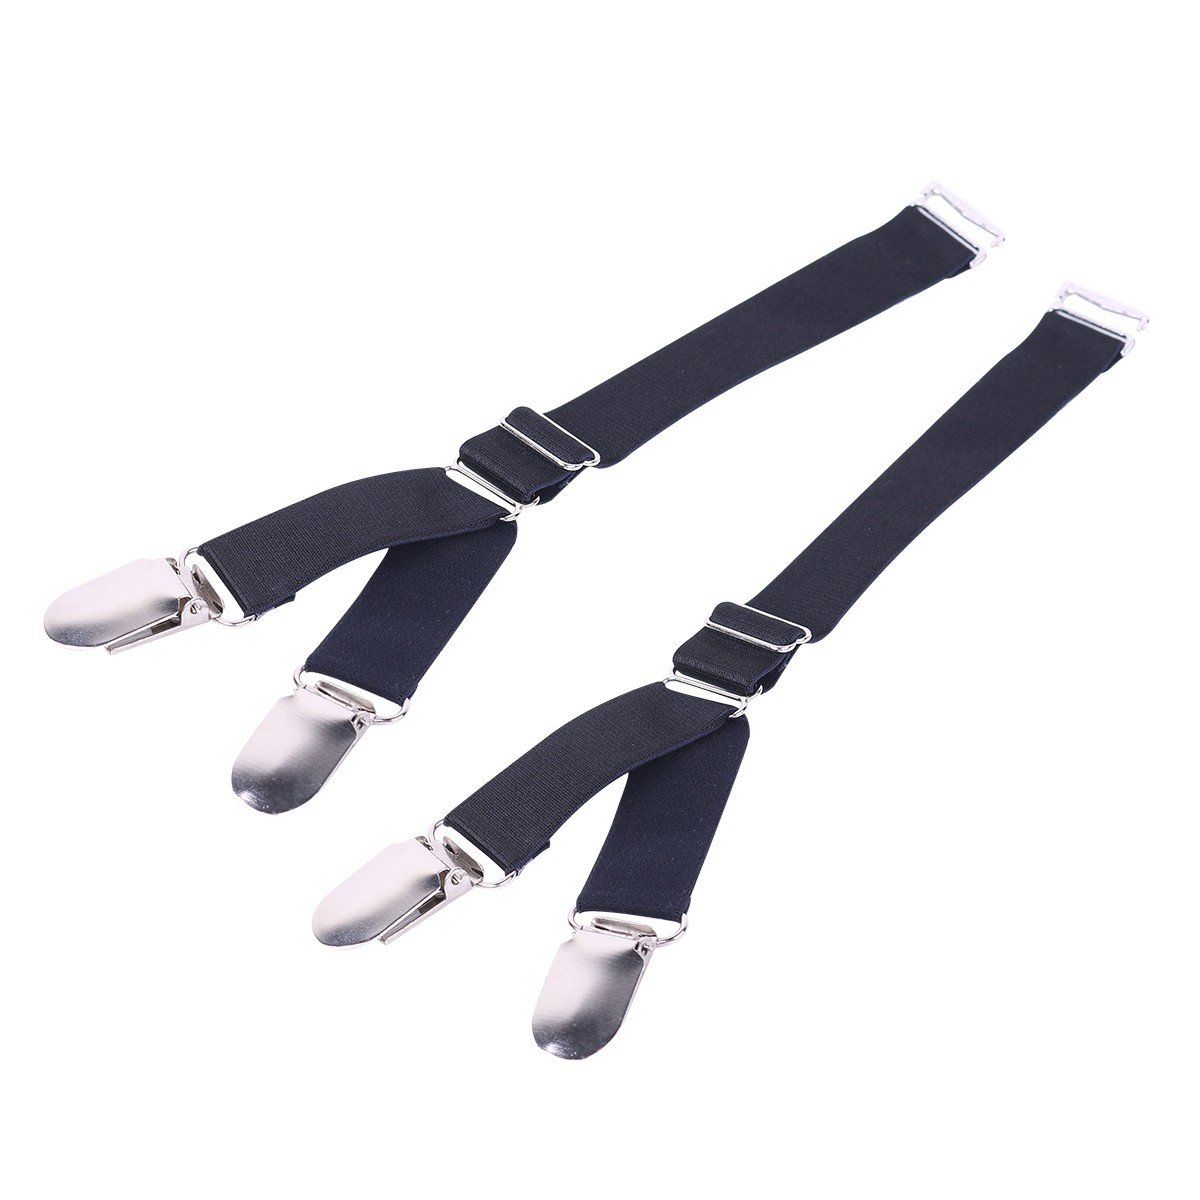 TiaoBug Suspender Clip Garters Straight Style & Y Style Stocking Holders with Duck-Mouth Metal or Plastic Clip Y Style, Duck-Mouth Metal Clip (2 Pcs) One Size